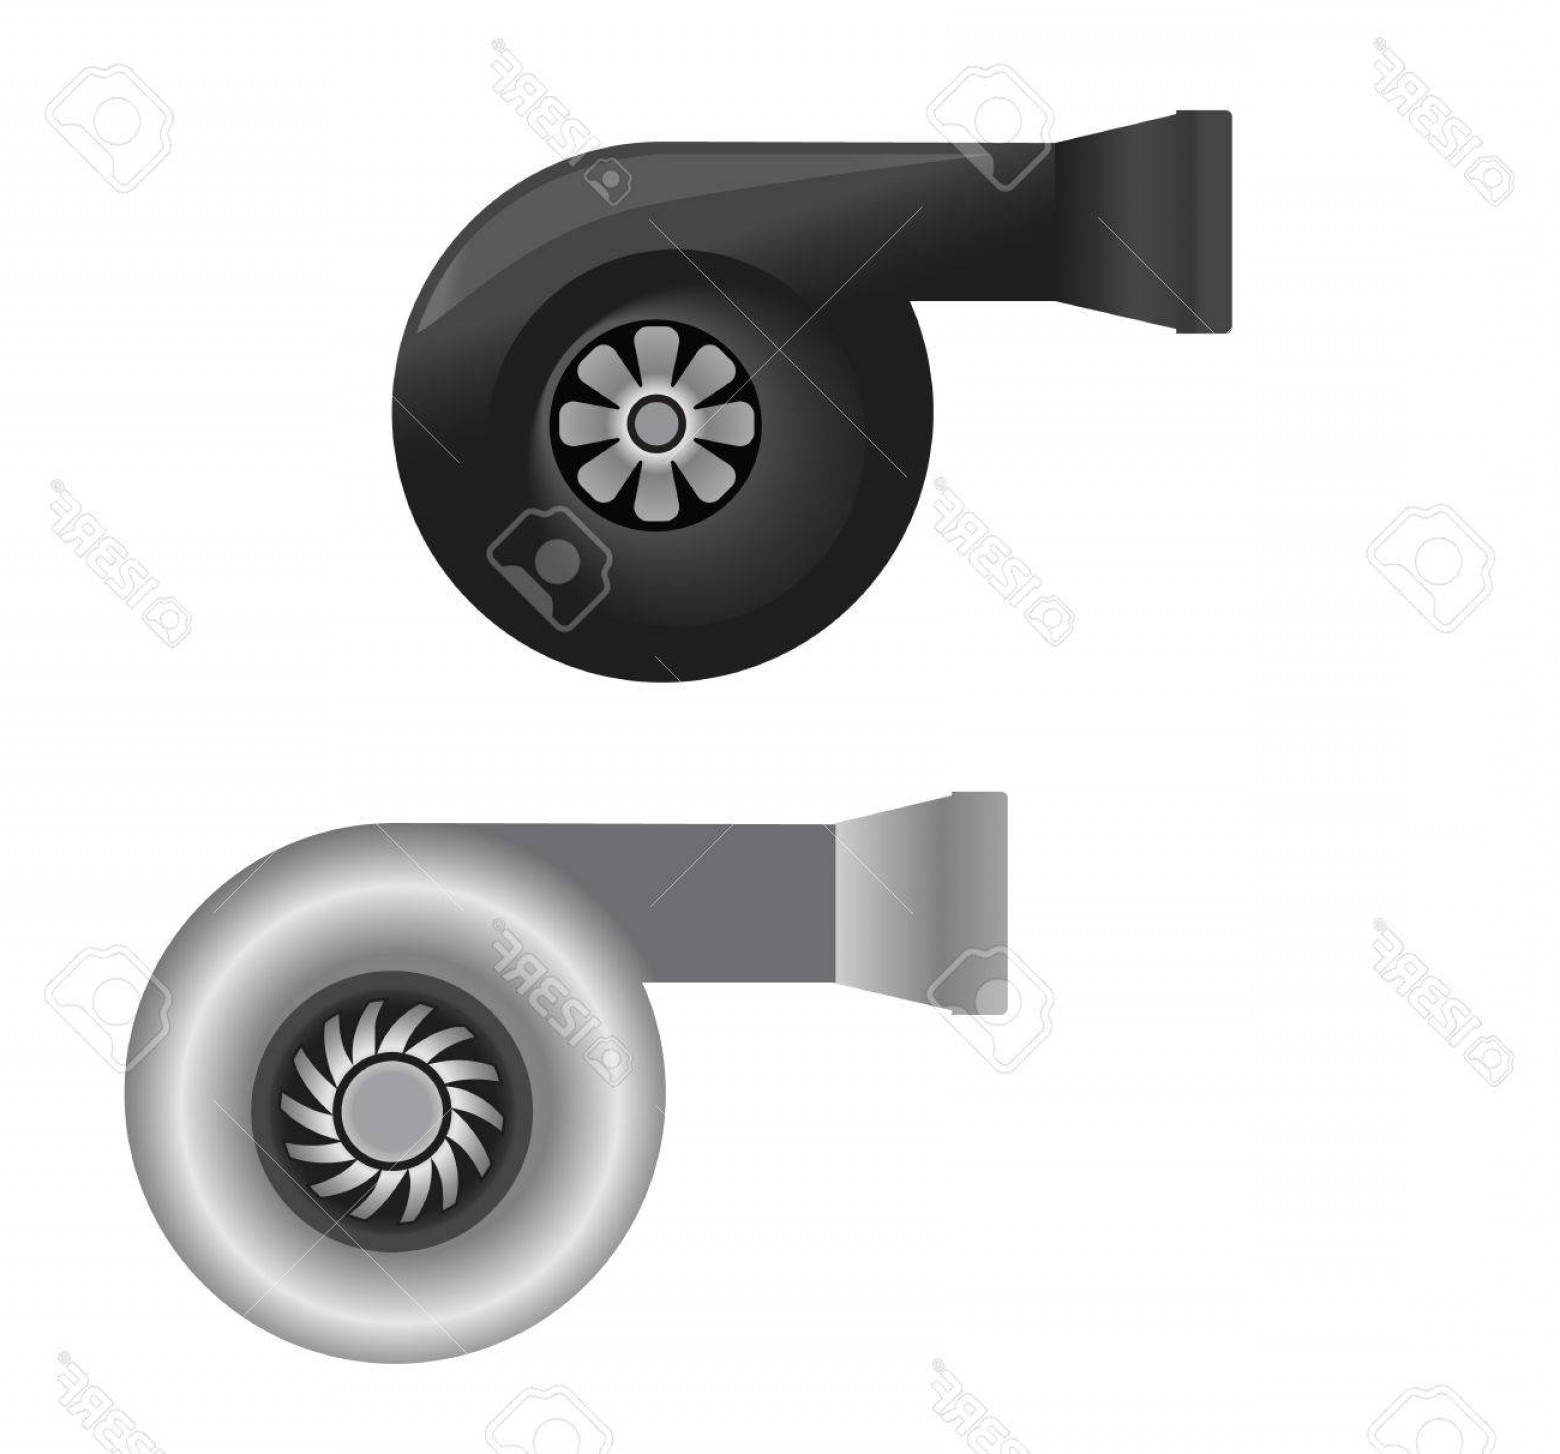 1560x1454 Photostock Vector Automobile Turbo Charger Vector Arenawp